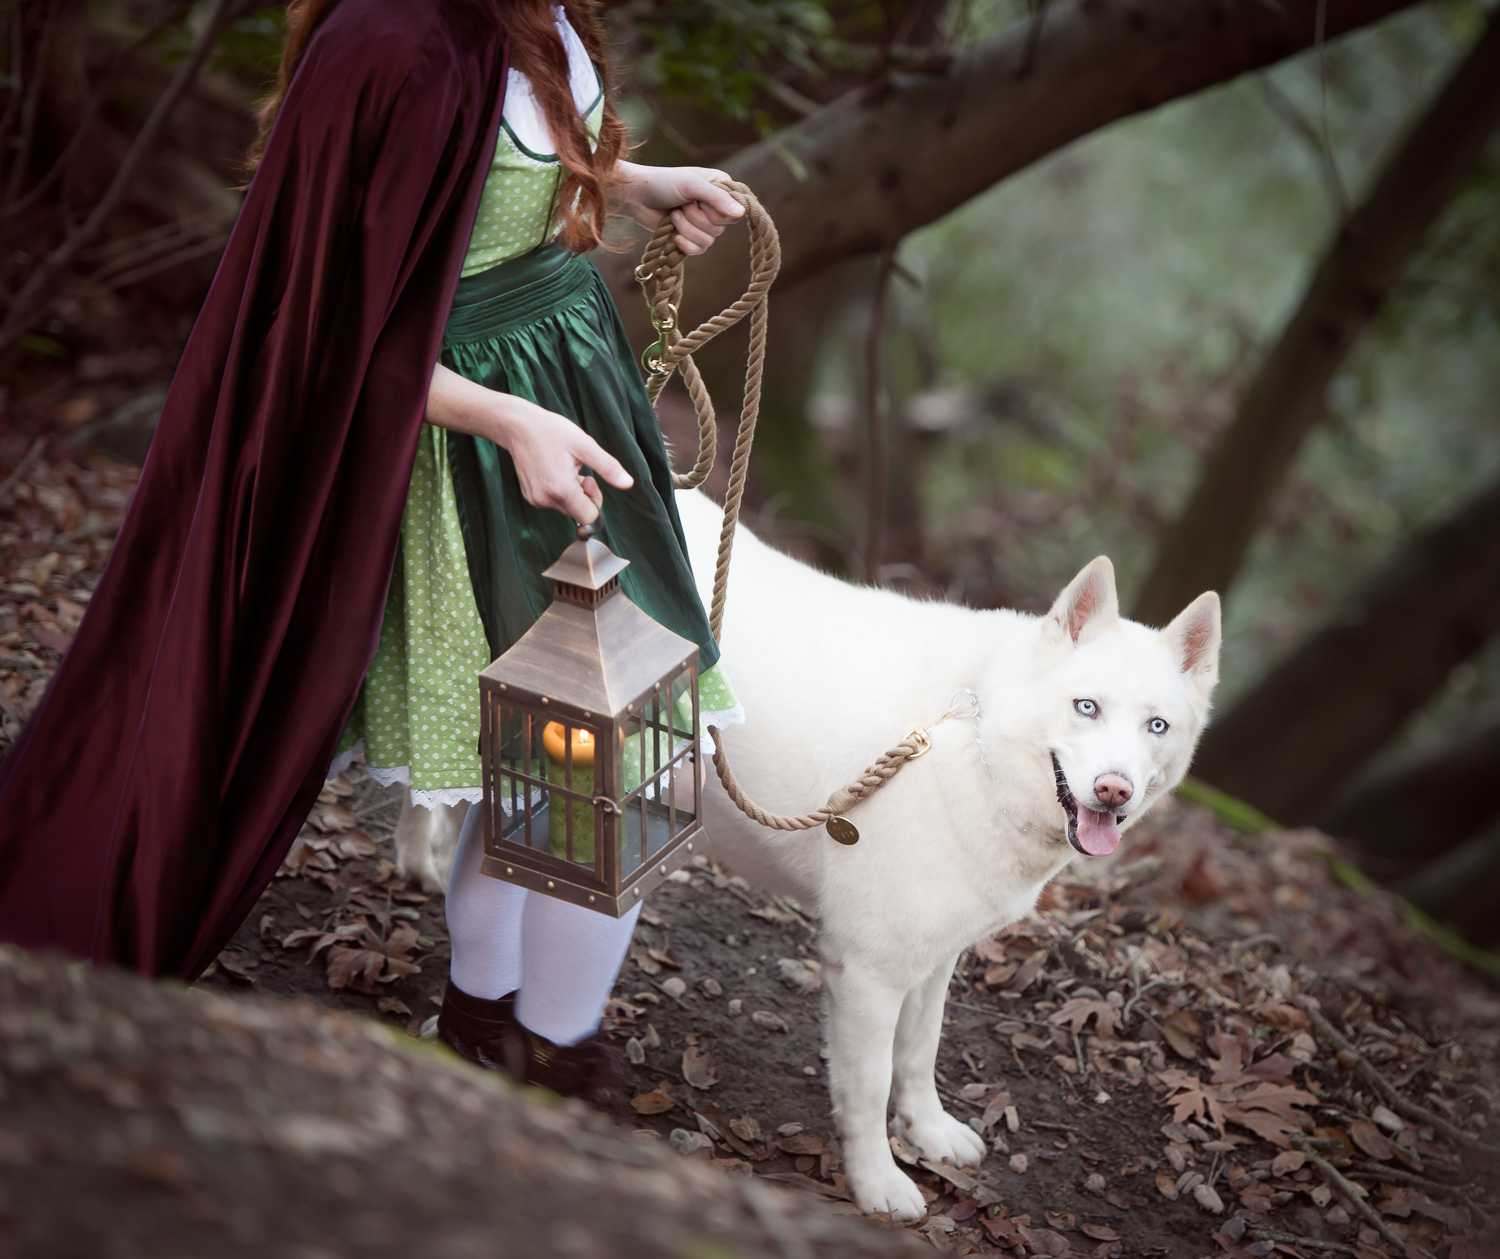 Red Riding Hoodand the white wolf // Conceptual Portraiture // Ashley Petersen Photo